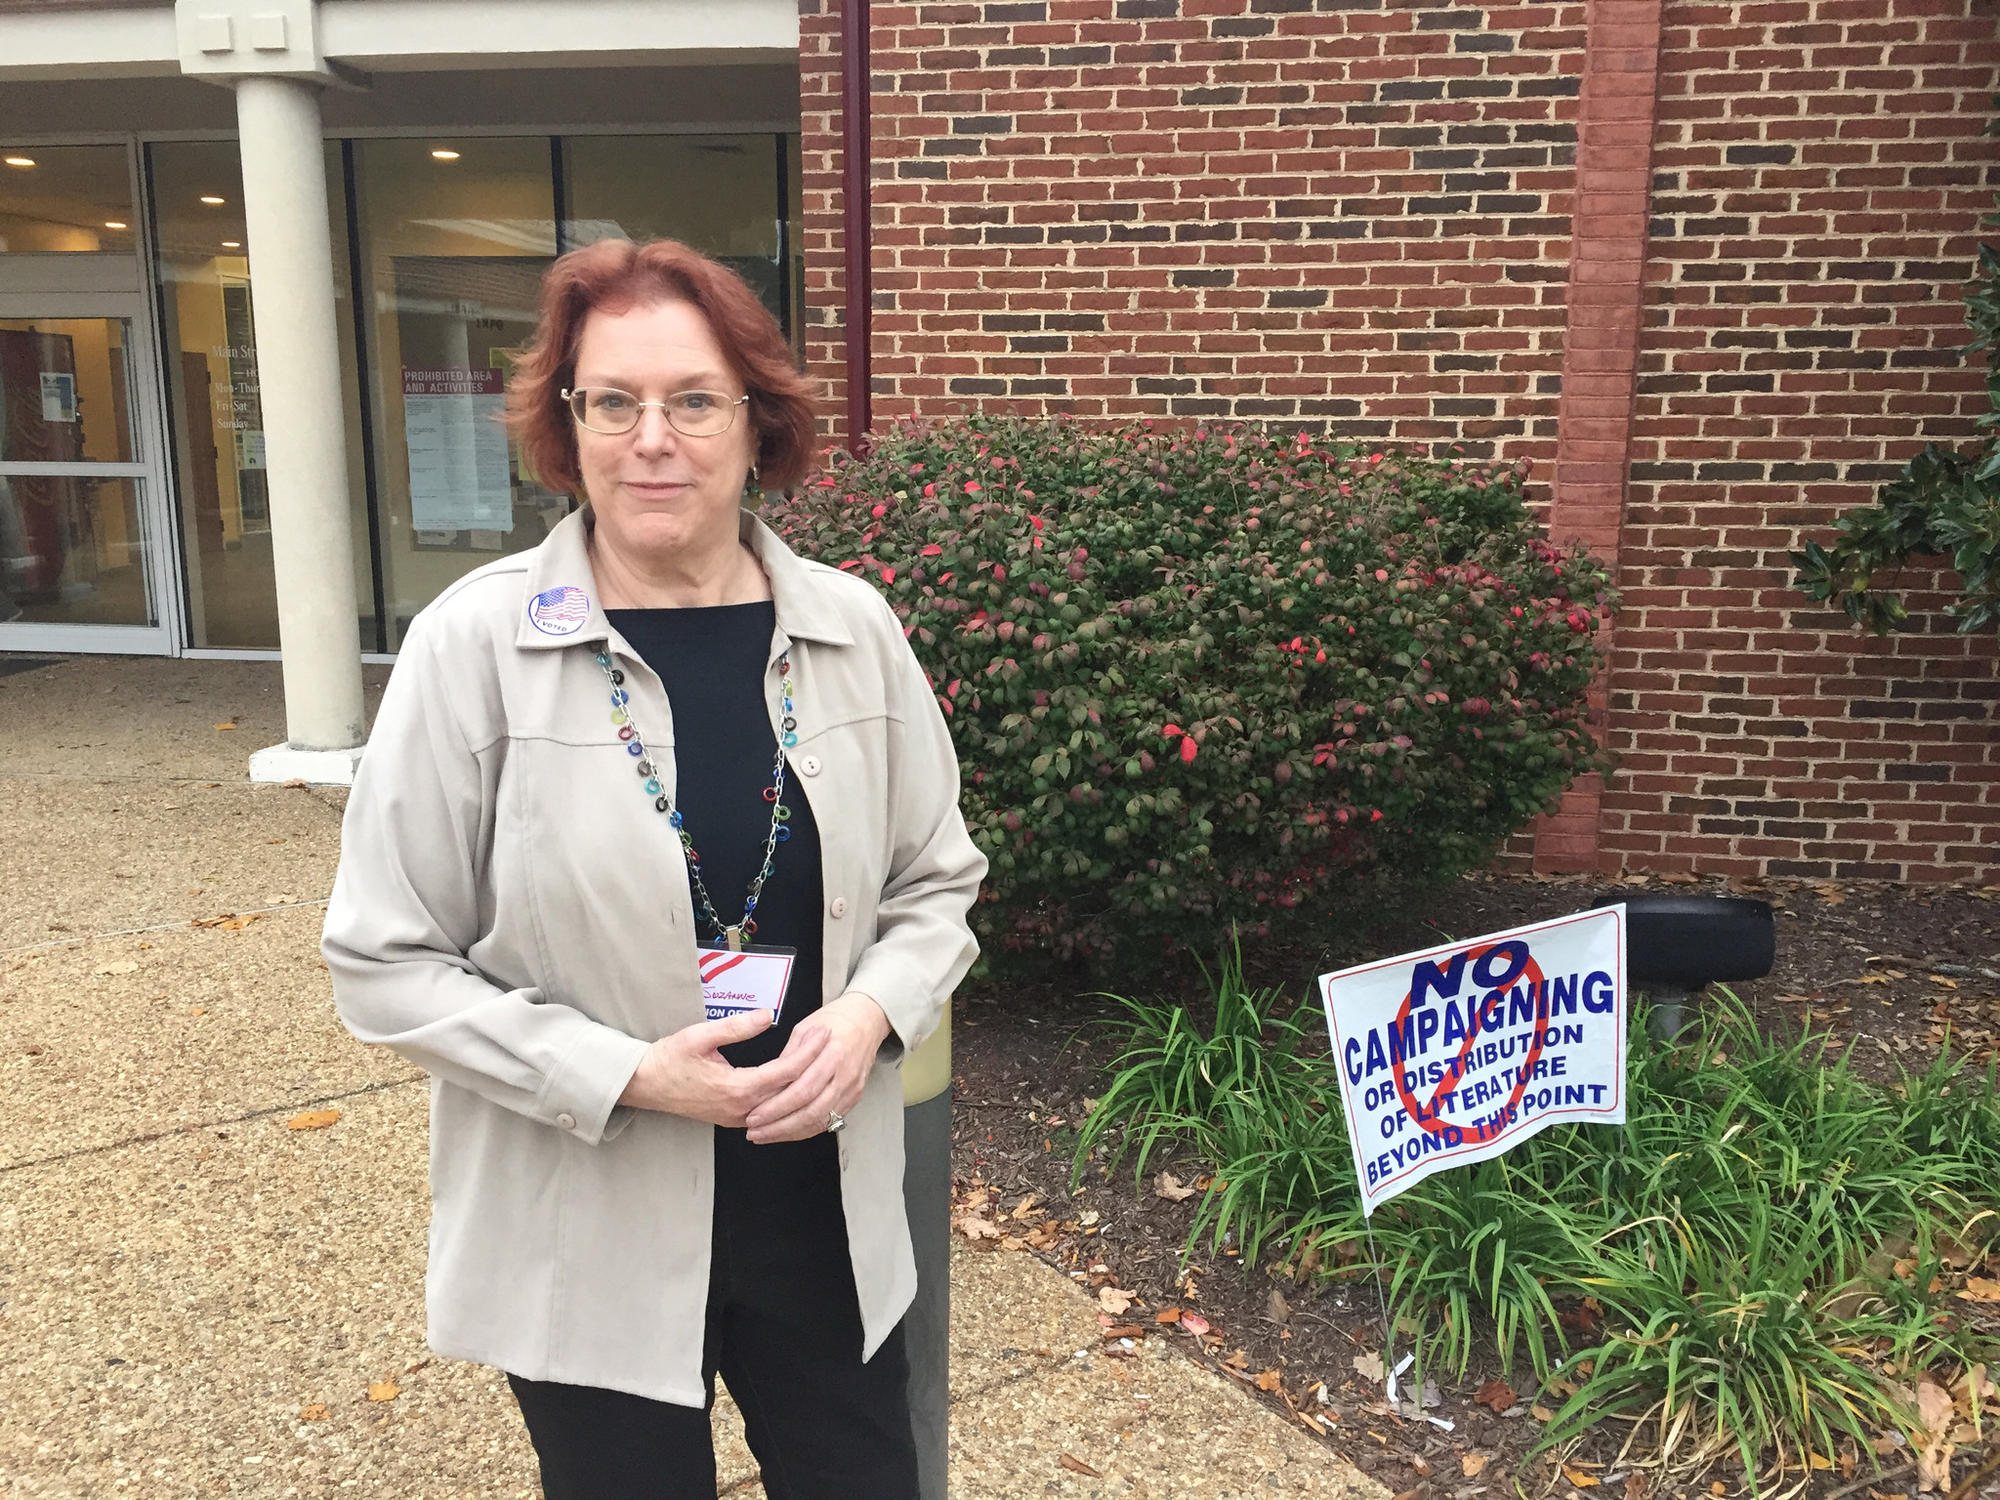 Hilton precinct chief Suzanne Pearson said 963 voters had cast ballots by 3:20 p.m.